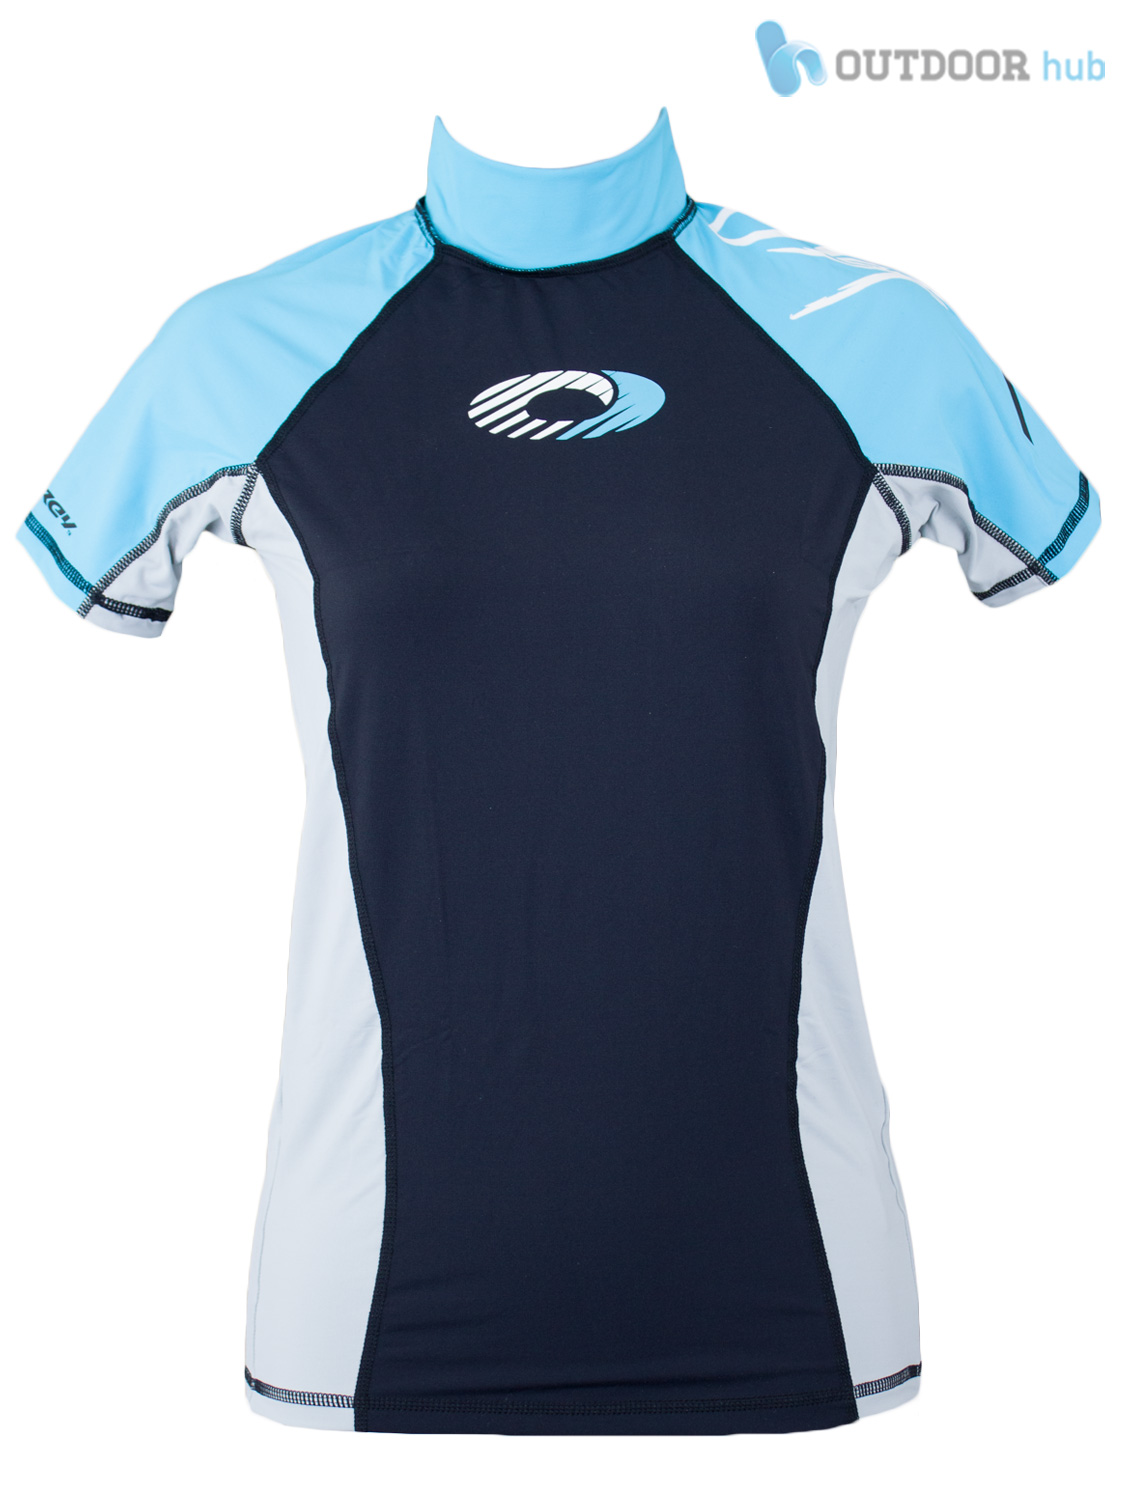 Osprey-Ladies-Short-Sleeve-Rash-Vest-Womens-Surf-T-Shirt-UV-50-Protection-Guard thumbnail 9